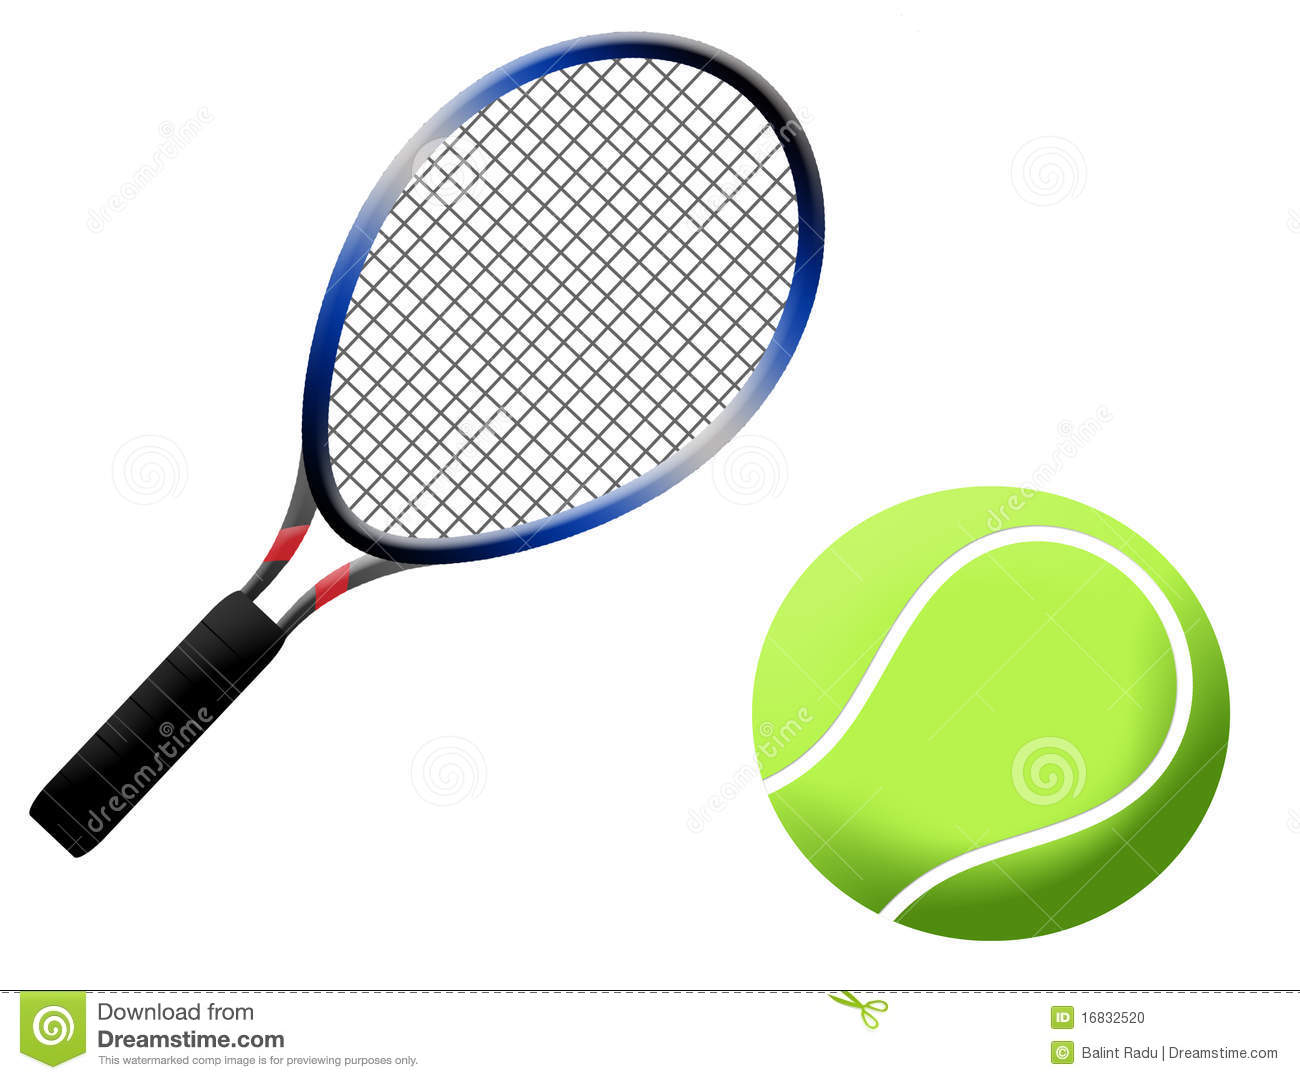 Tennis racket and ball illustration, on white background.